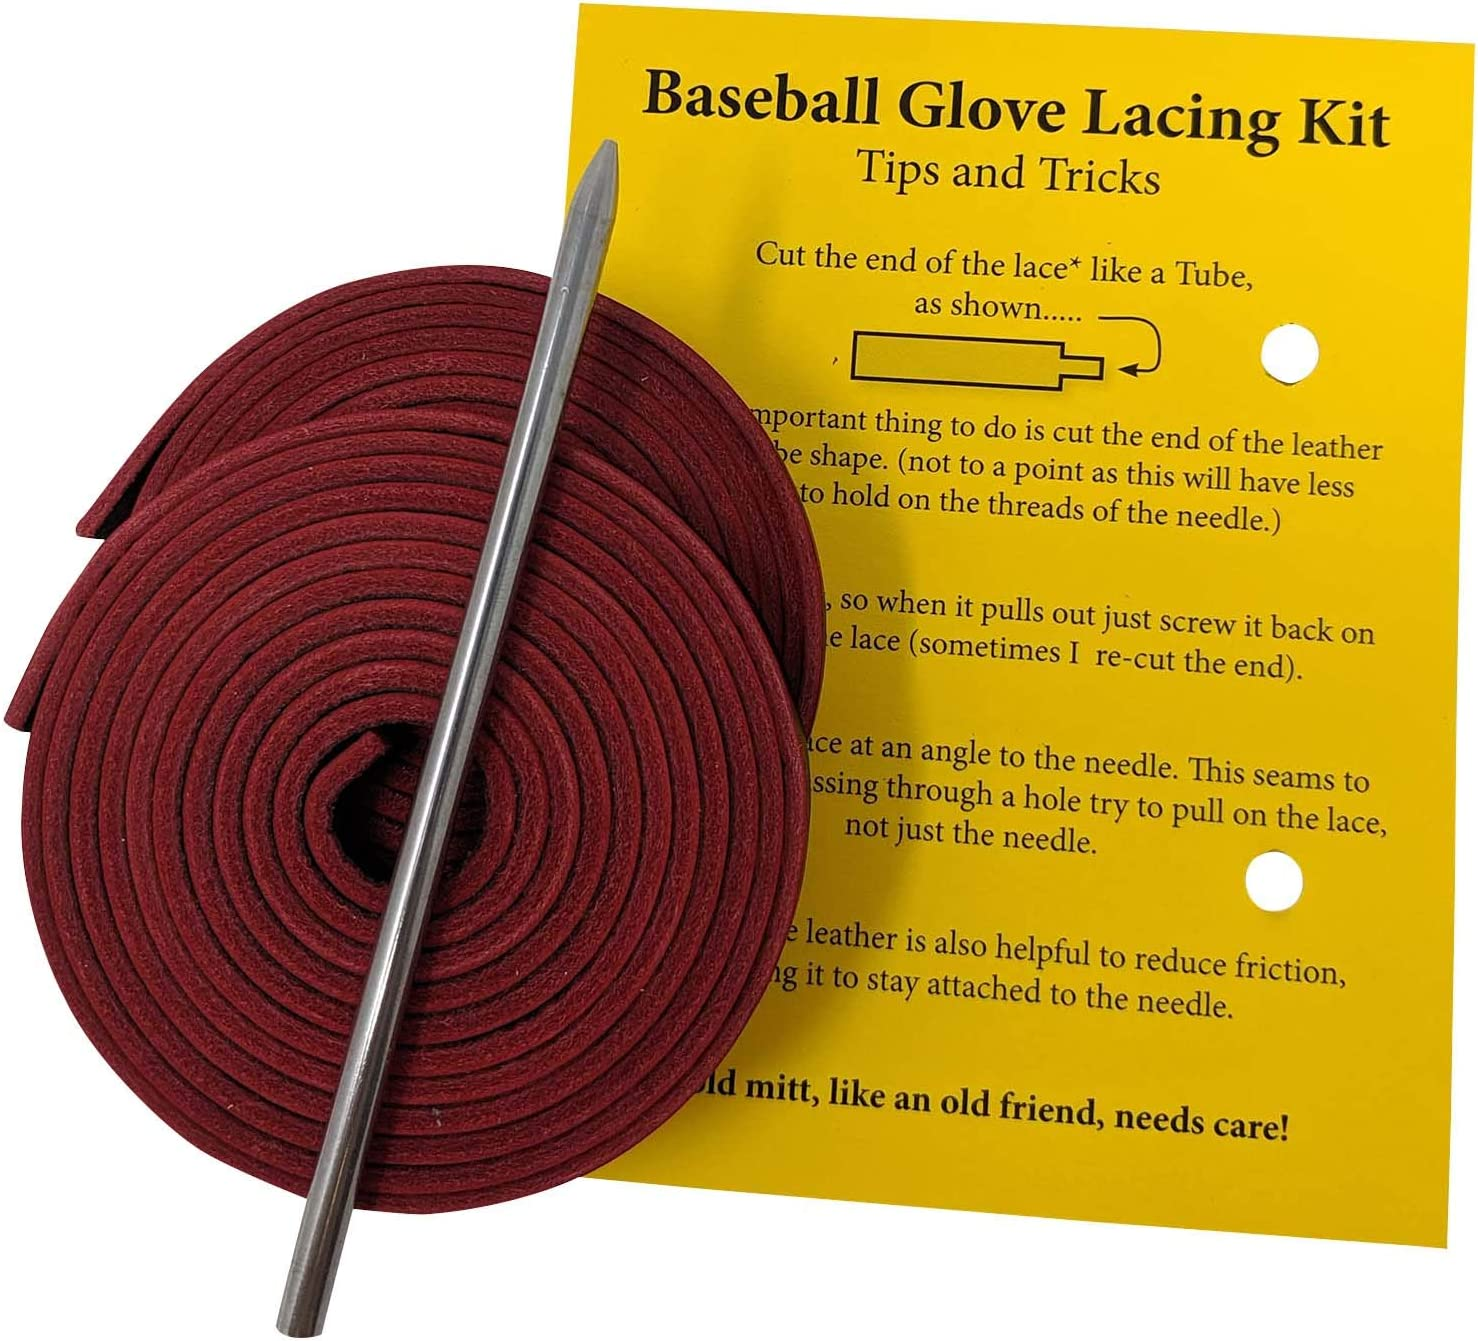 TOFL Highland Group 2 Leather Laces Leather Lacing Needle Baseball and Softball Glove Lace Kit